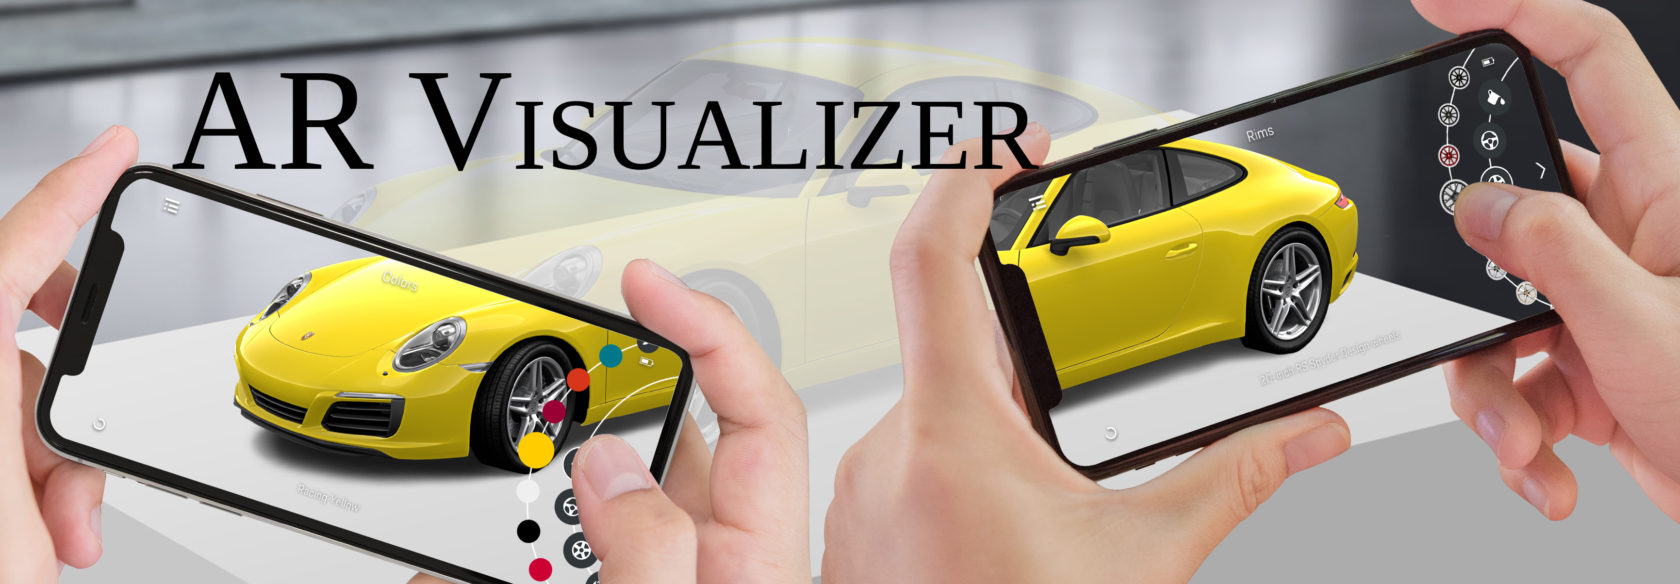 "alt=""Visualizer"""